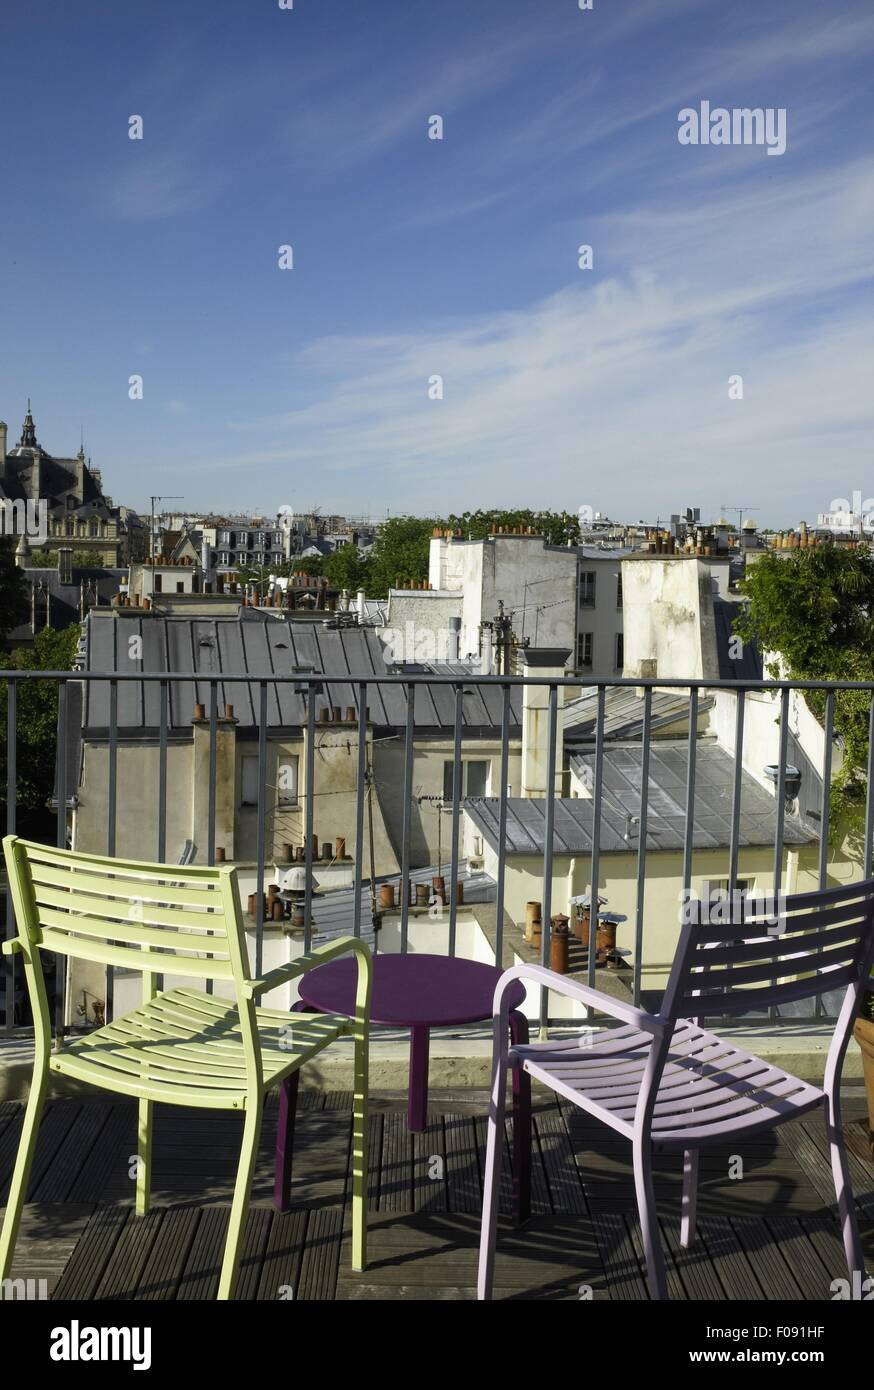 Terrasse Hotel Paris Chairs On Terrace Of Hotel Terrasse Saint In Paris France Stock